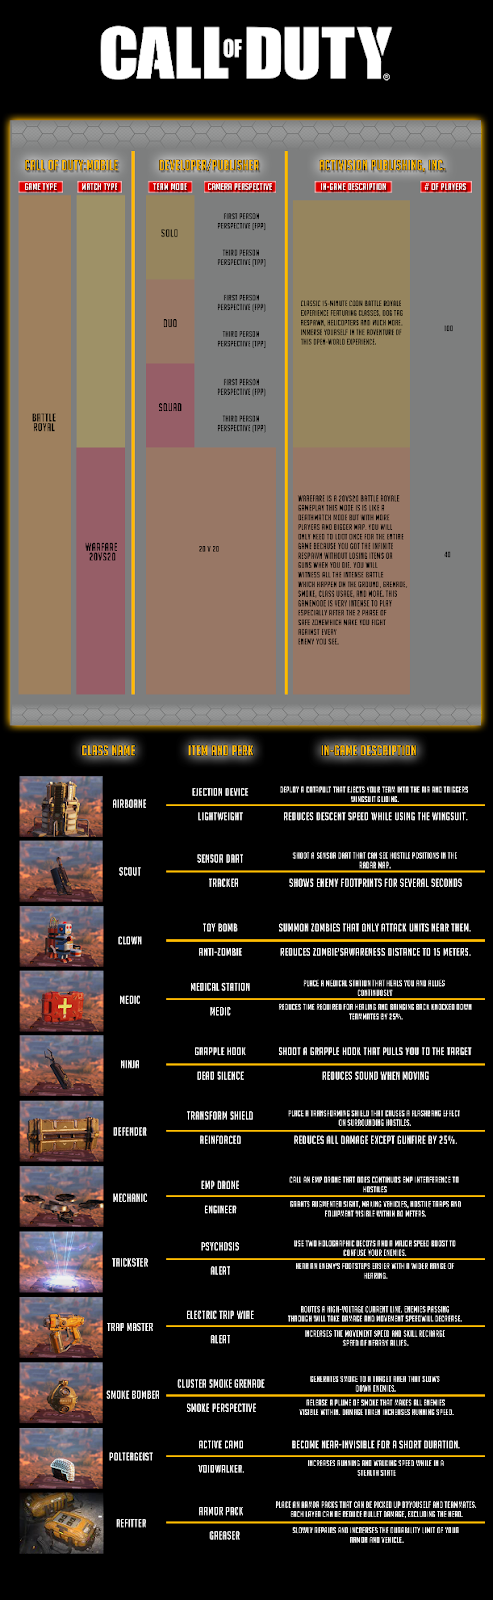 Call of Duty Game Guide